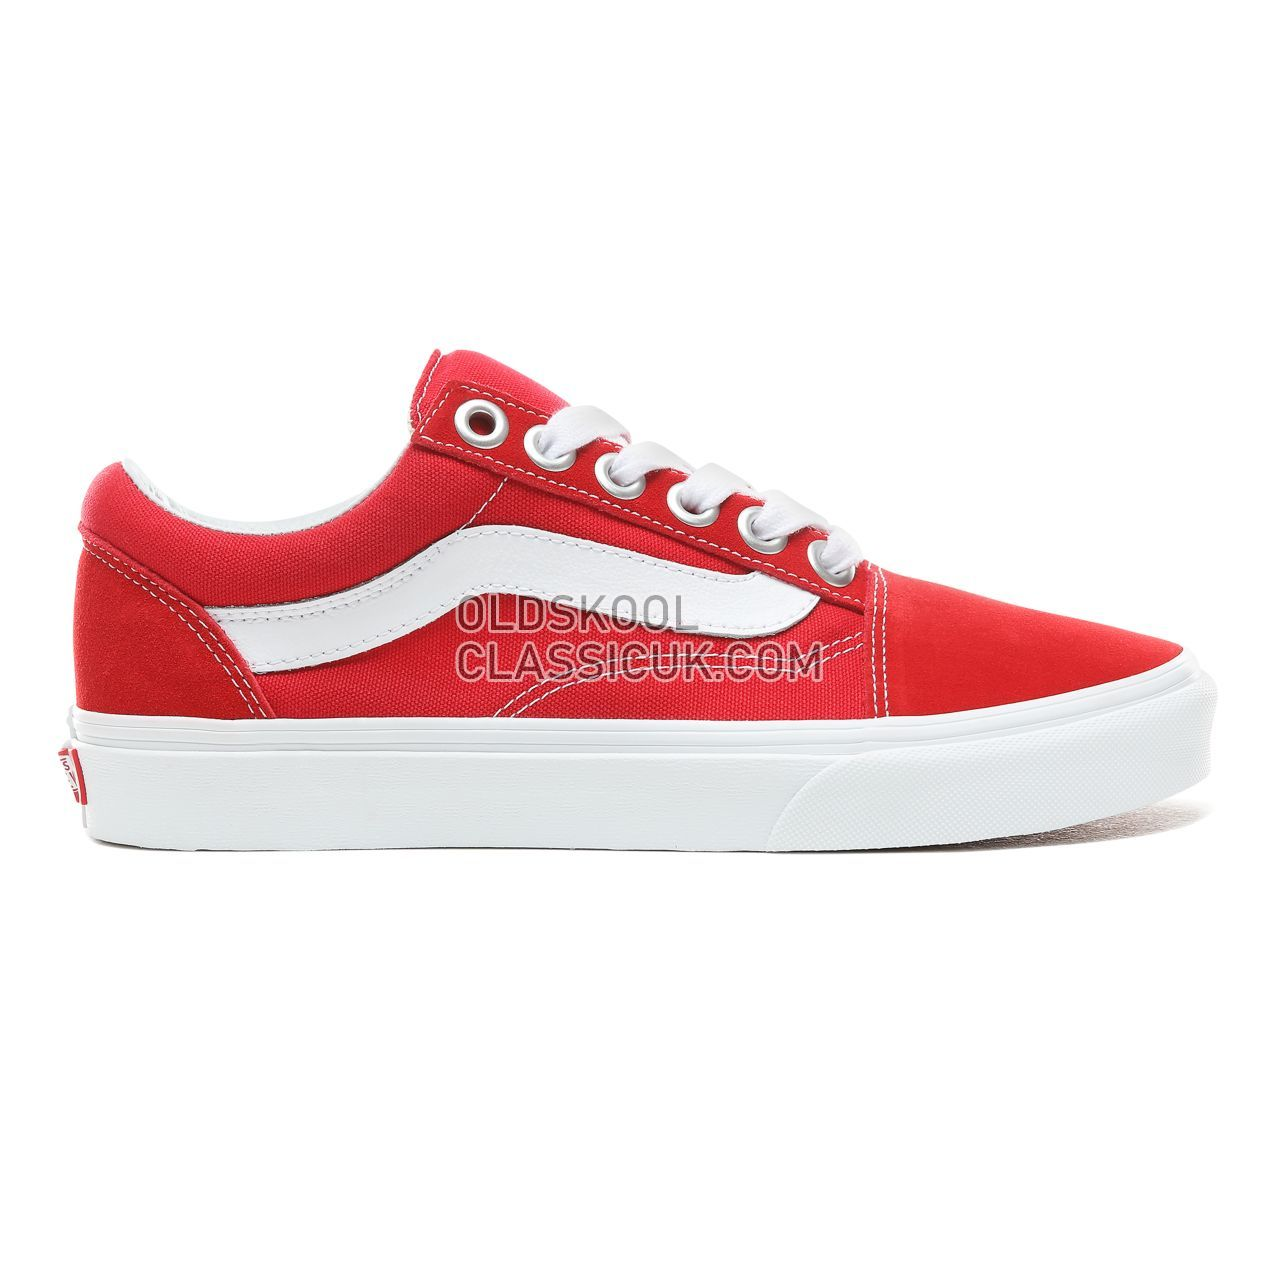 a8bf2db2ad Vans Old Skool OS Sneakers Mens Womens Unisex Racing Red True White  VN0A3WLYJV6 Shoes ...